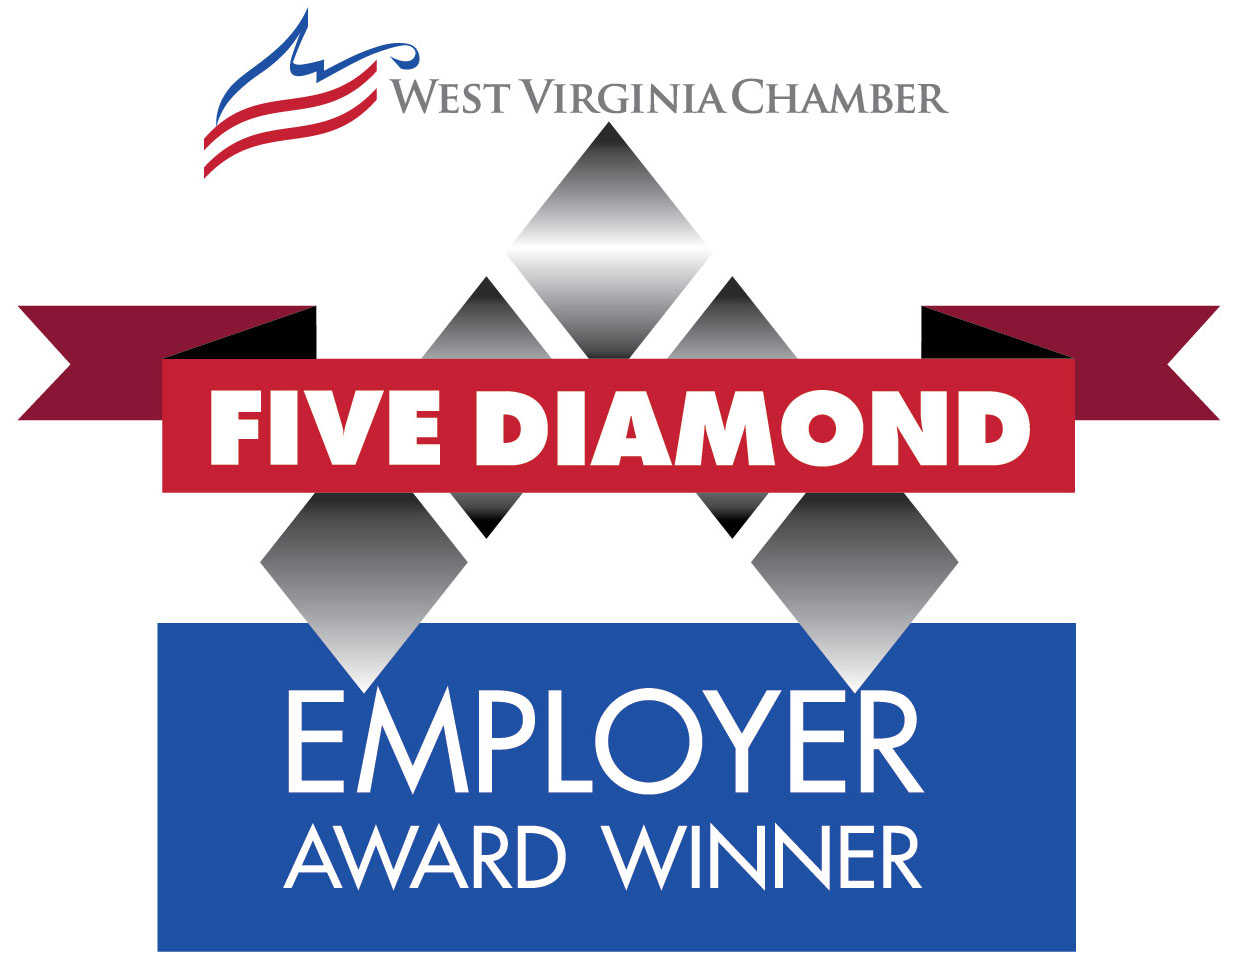 Five Diamond Employee Award Winner